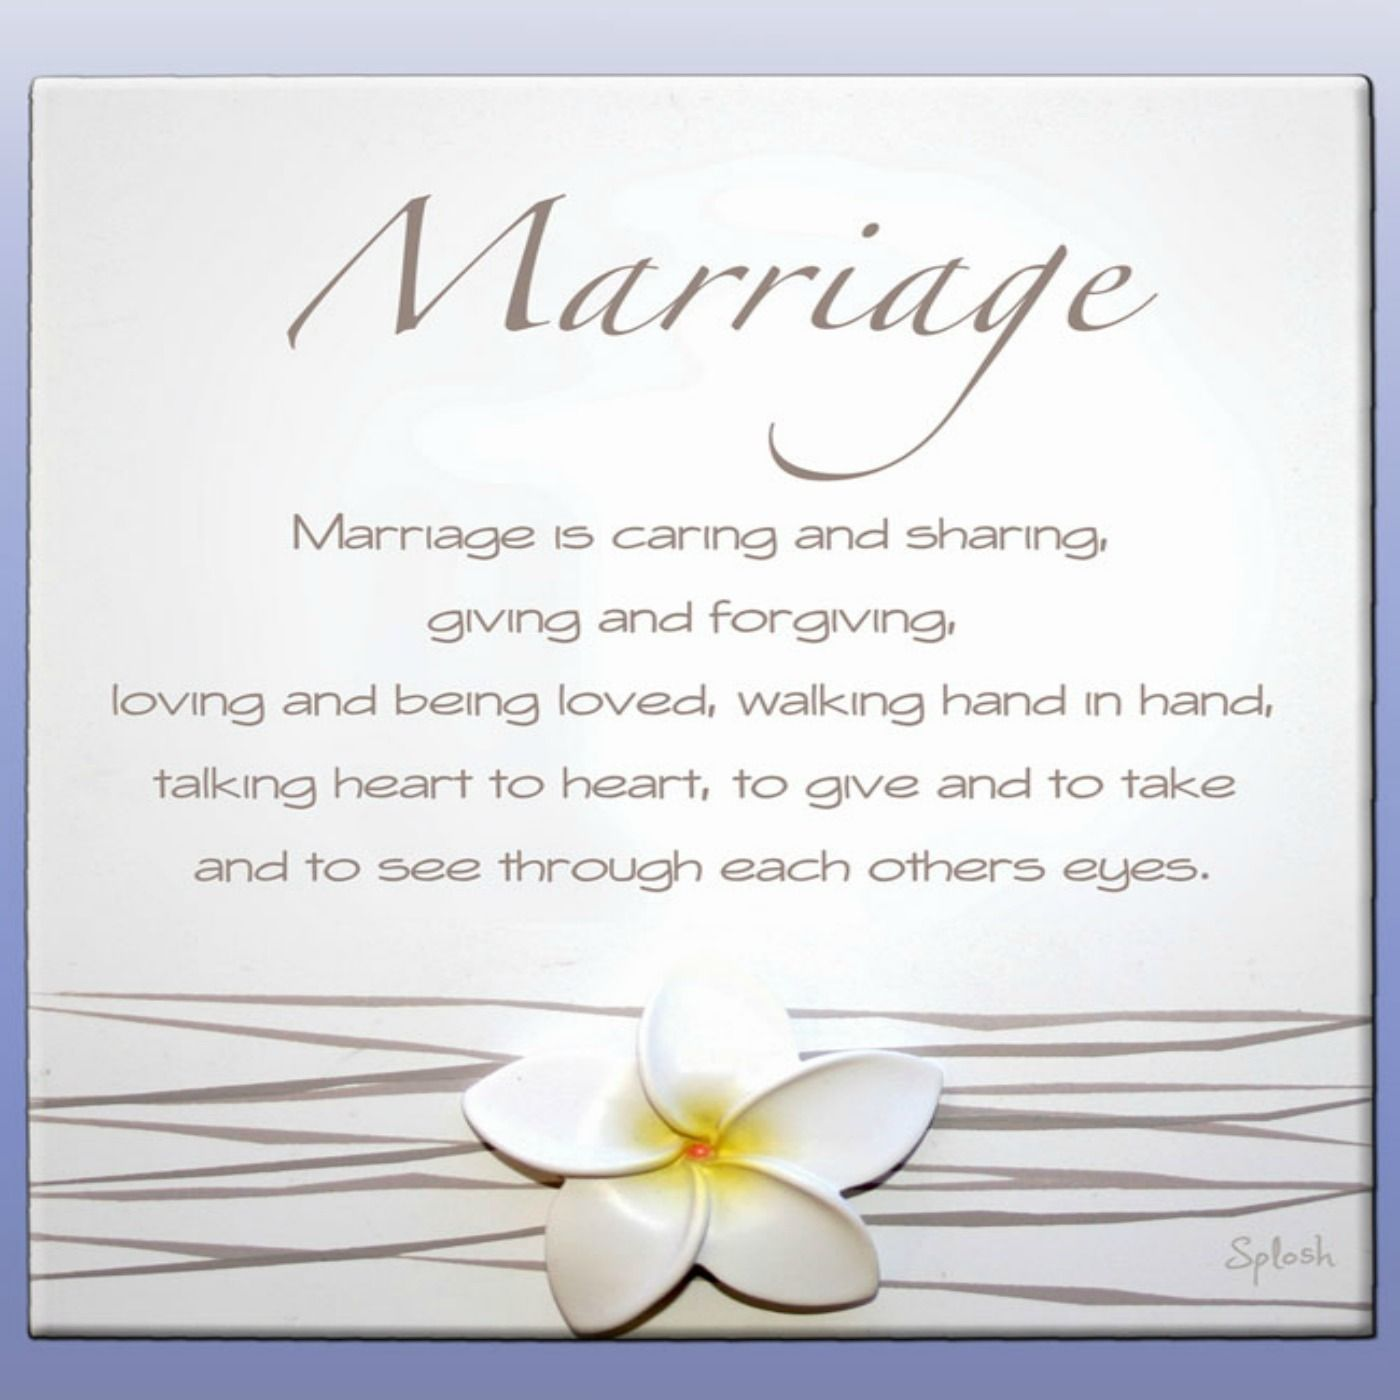 Marriage Marriage Poem Splosh By Occasion